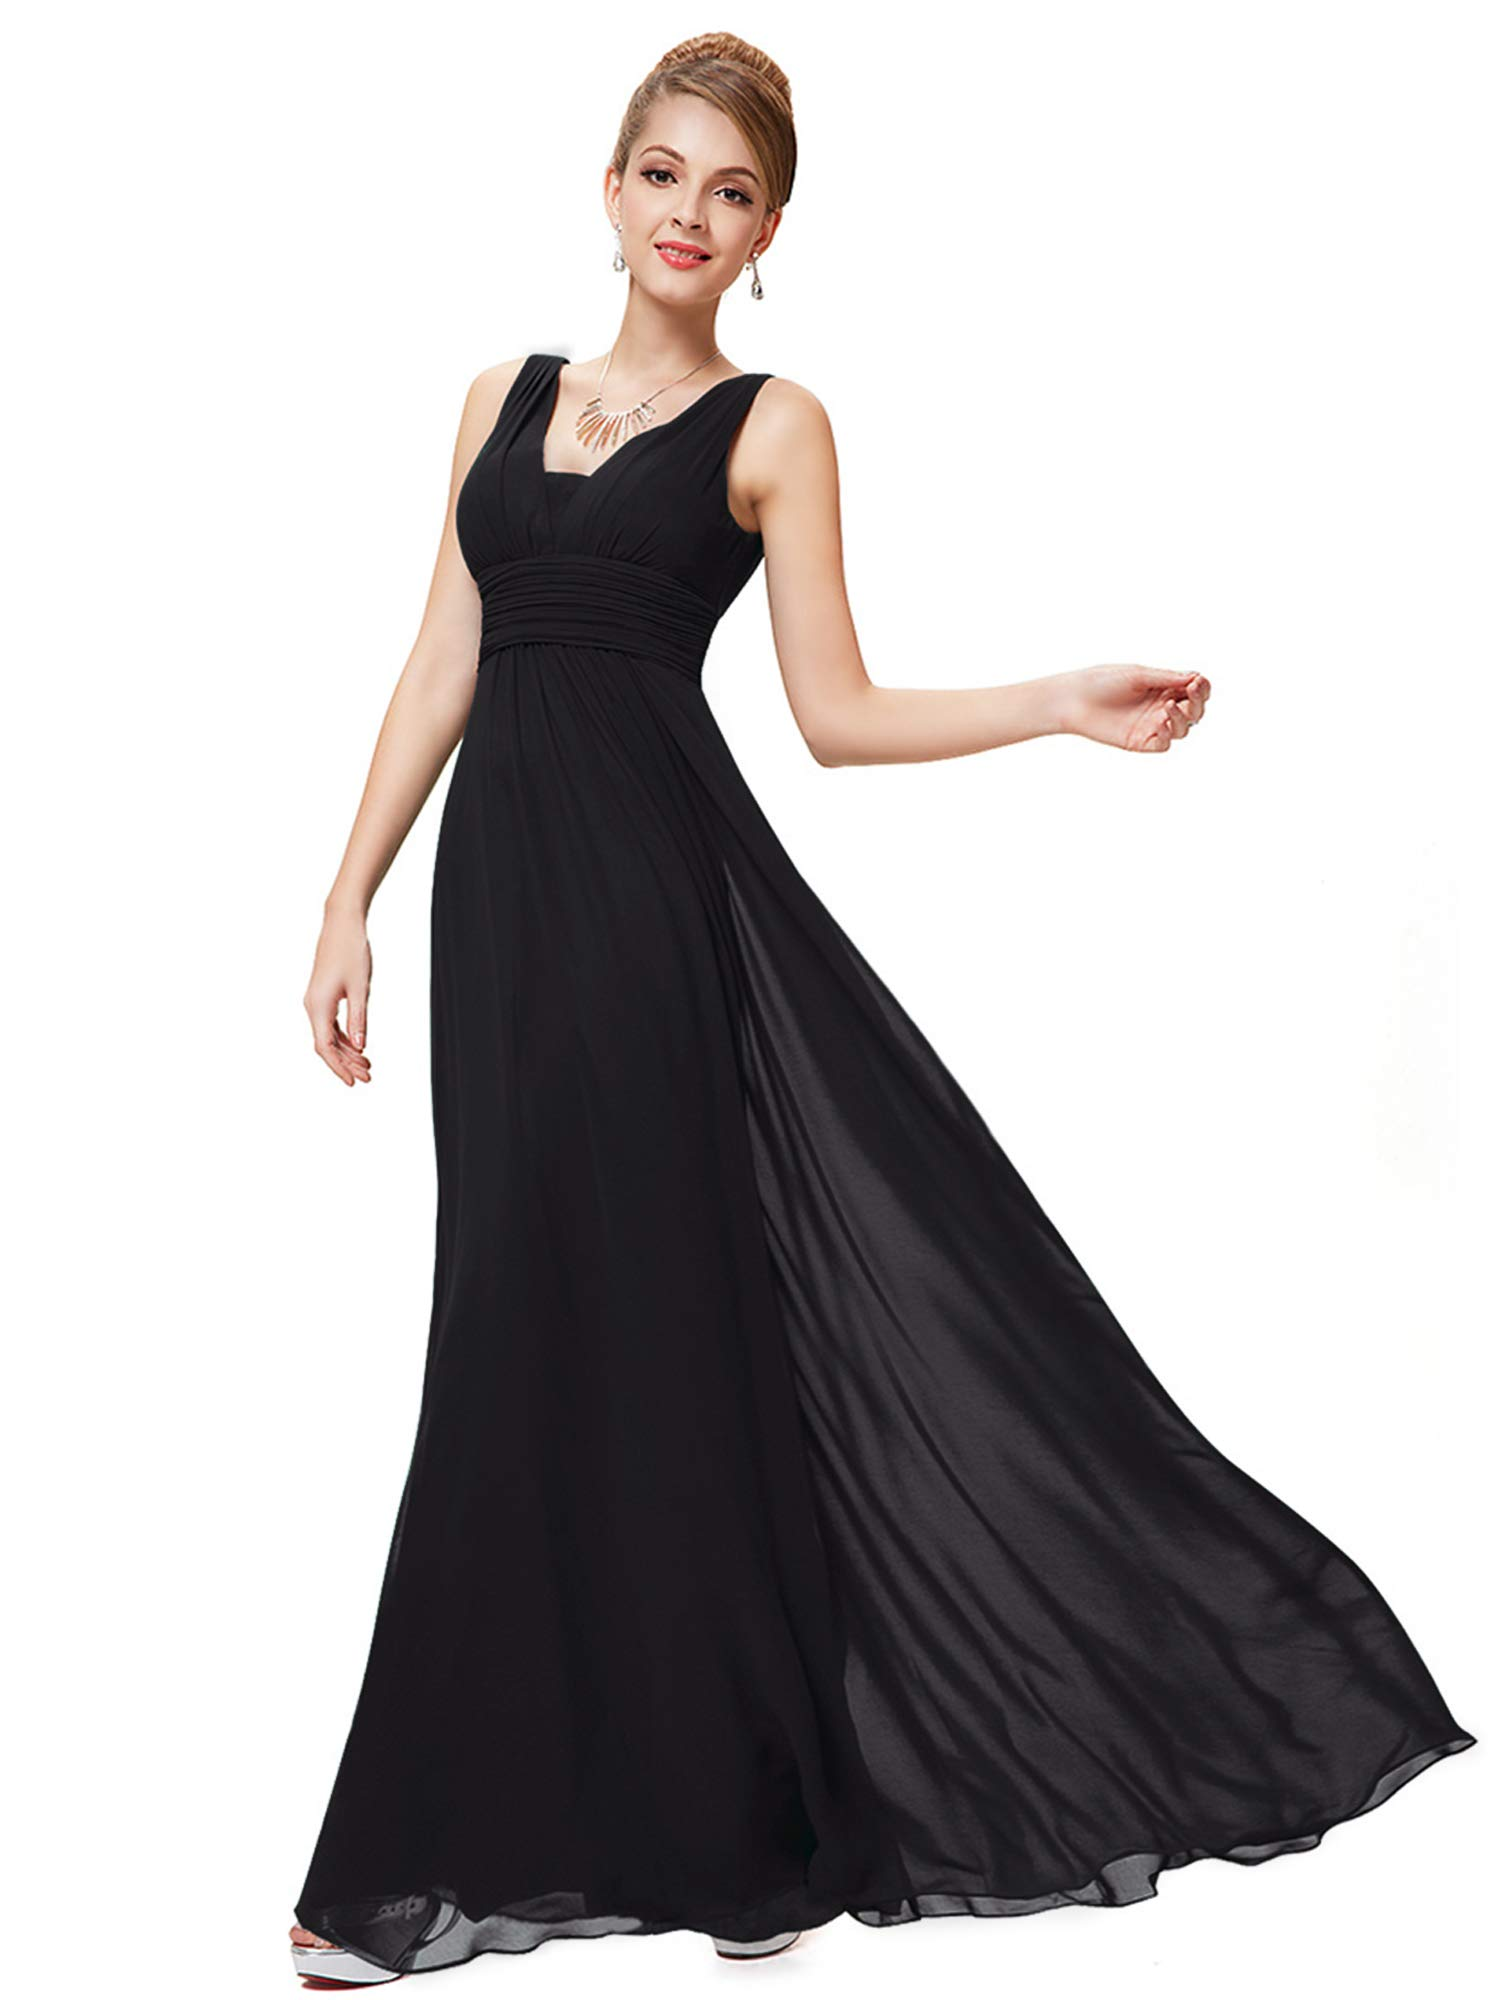 fbea39ed172 Galleon - Ever-Pretty Womens Long Chiffon Wedding Dresses For Guests 6US  Black